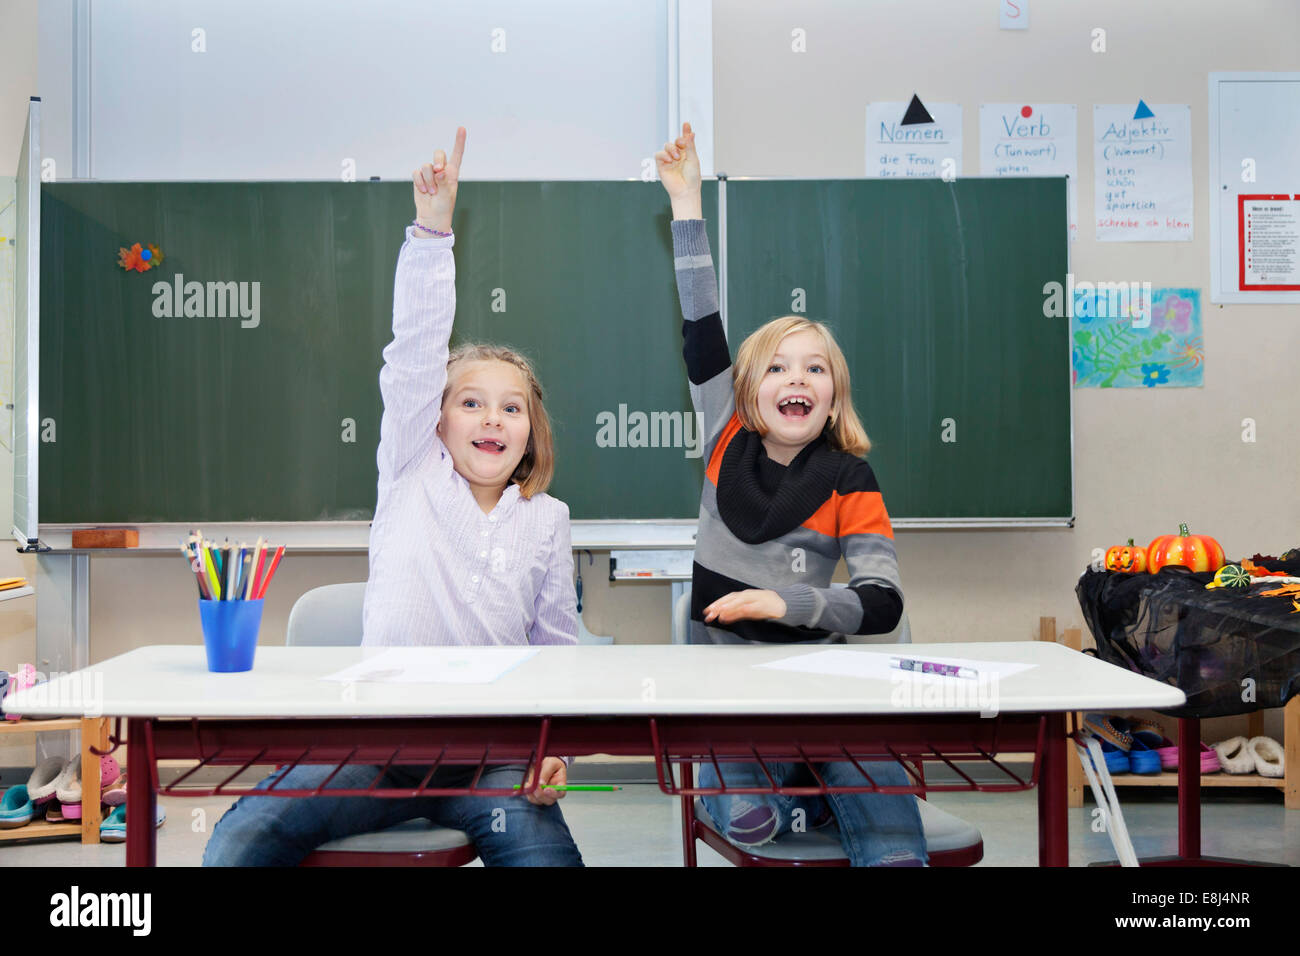 Two schoolgirls, 7 and 9 years, putting up their hands in class - Stock Image